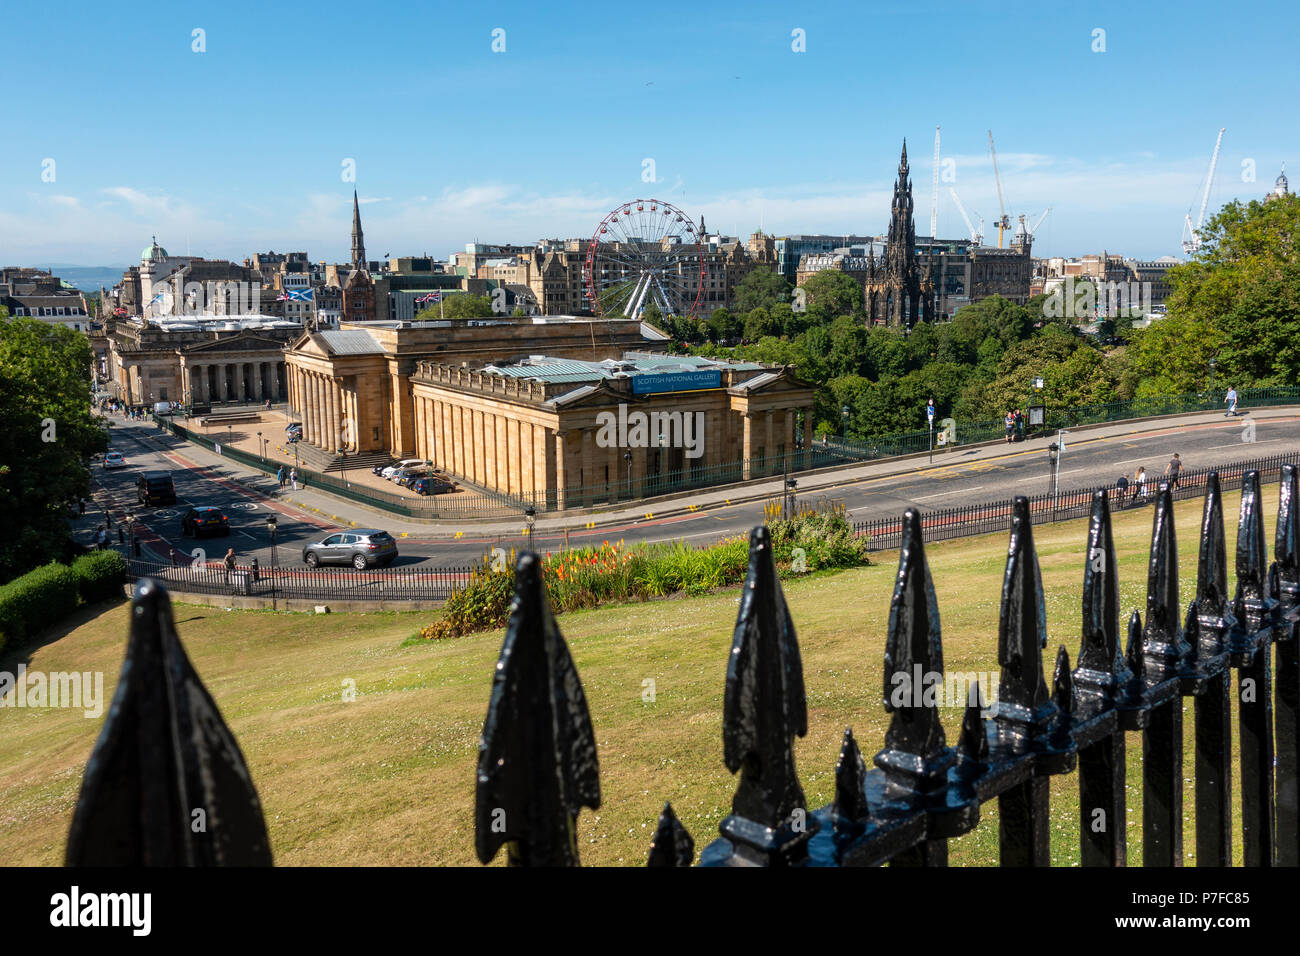 View of National Gallery of Scotland from The Mound in Edinburgh, Scotland, UK Stock Photo